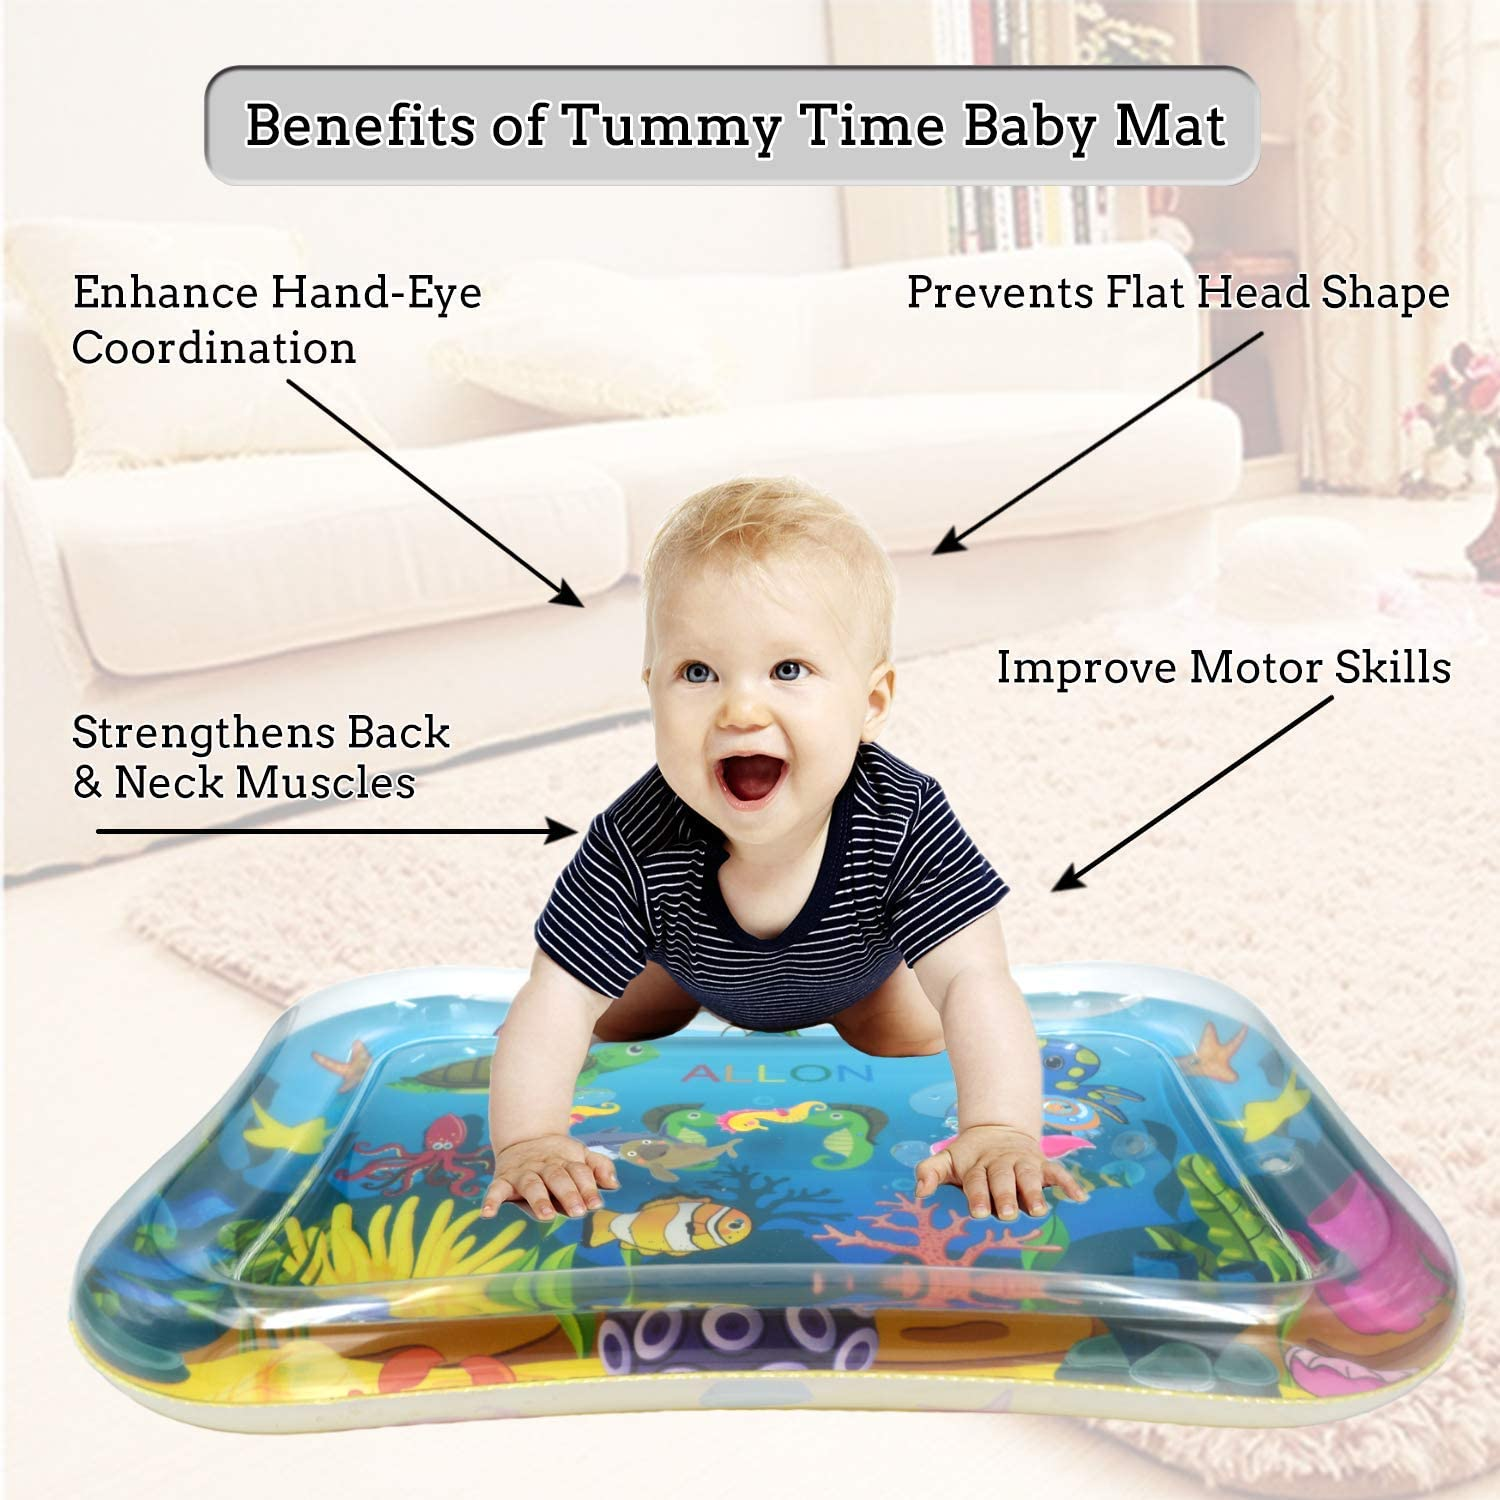 ALLON Tummy Time Baby Water Play Mat Best Activity Centers Baby Sensory Toys for 3 6 9 Months Leakproof Inflatable Play Mats for Infants /& Toddlers